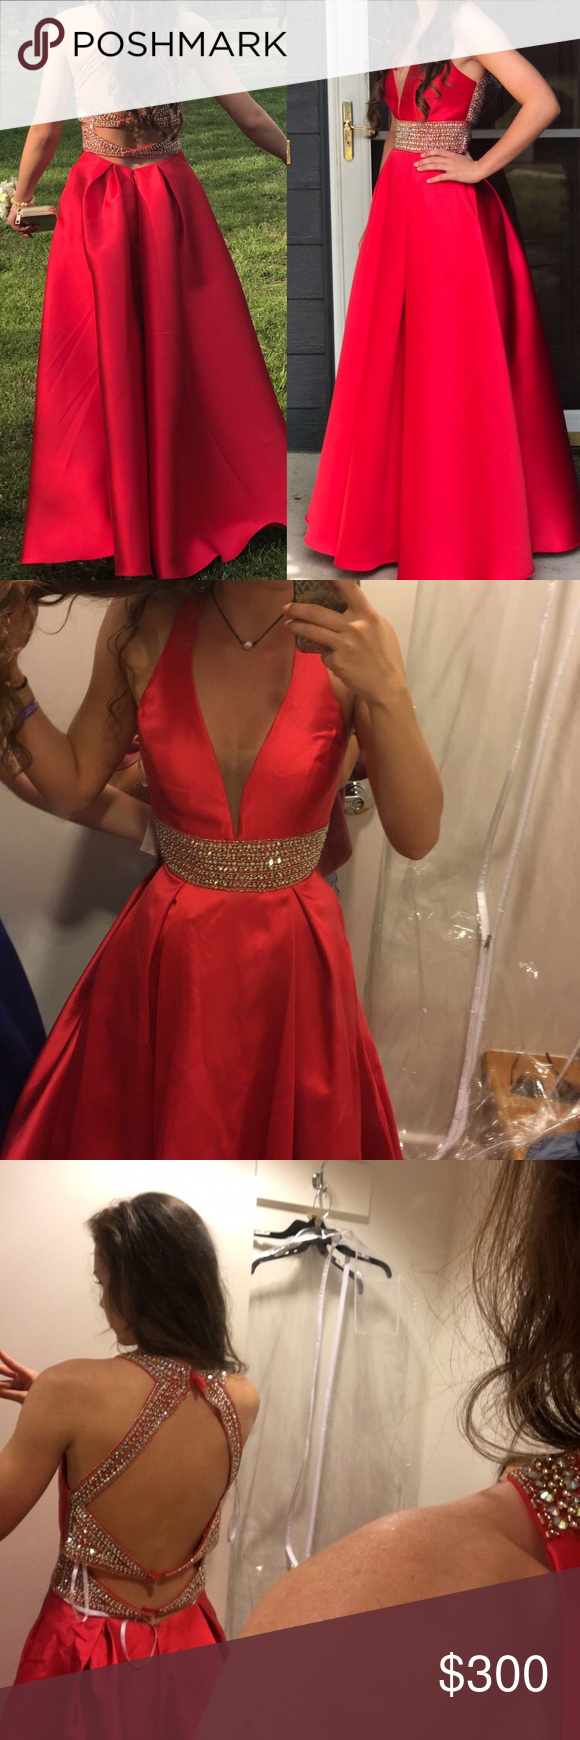 Prom dress size red with gold detailing on the front and back